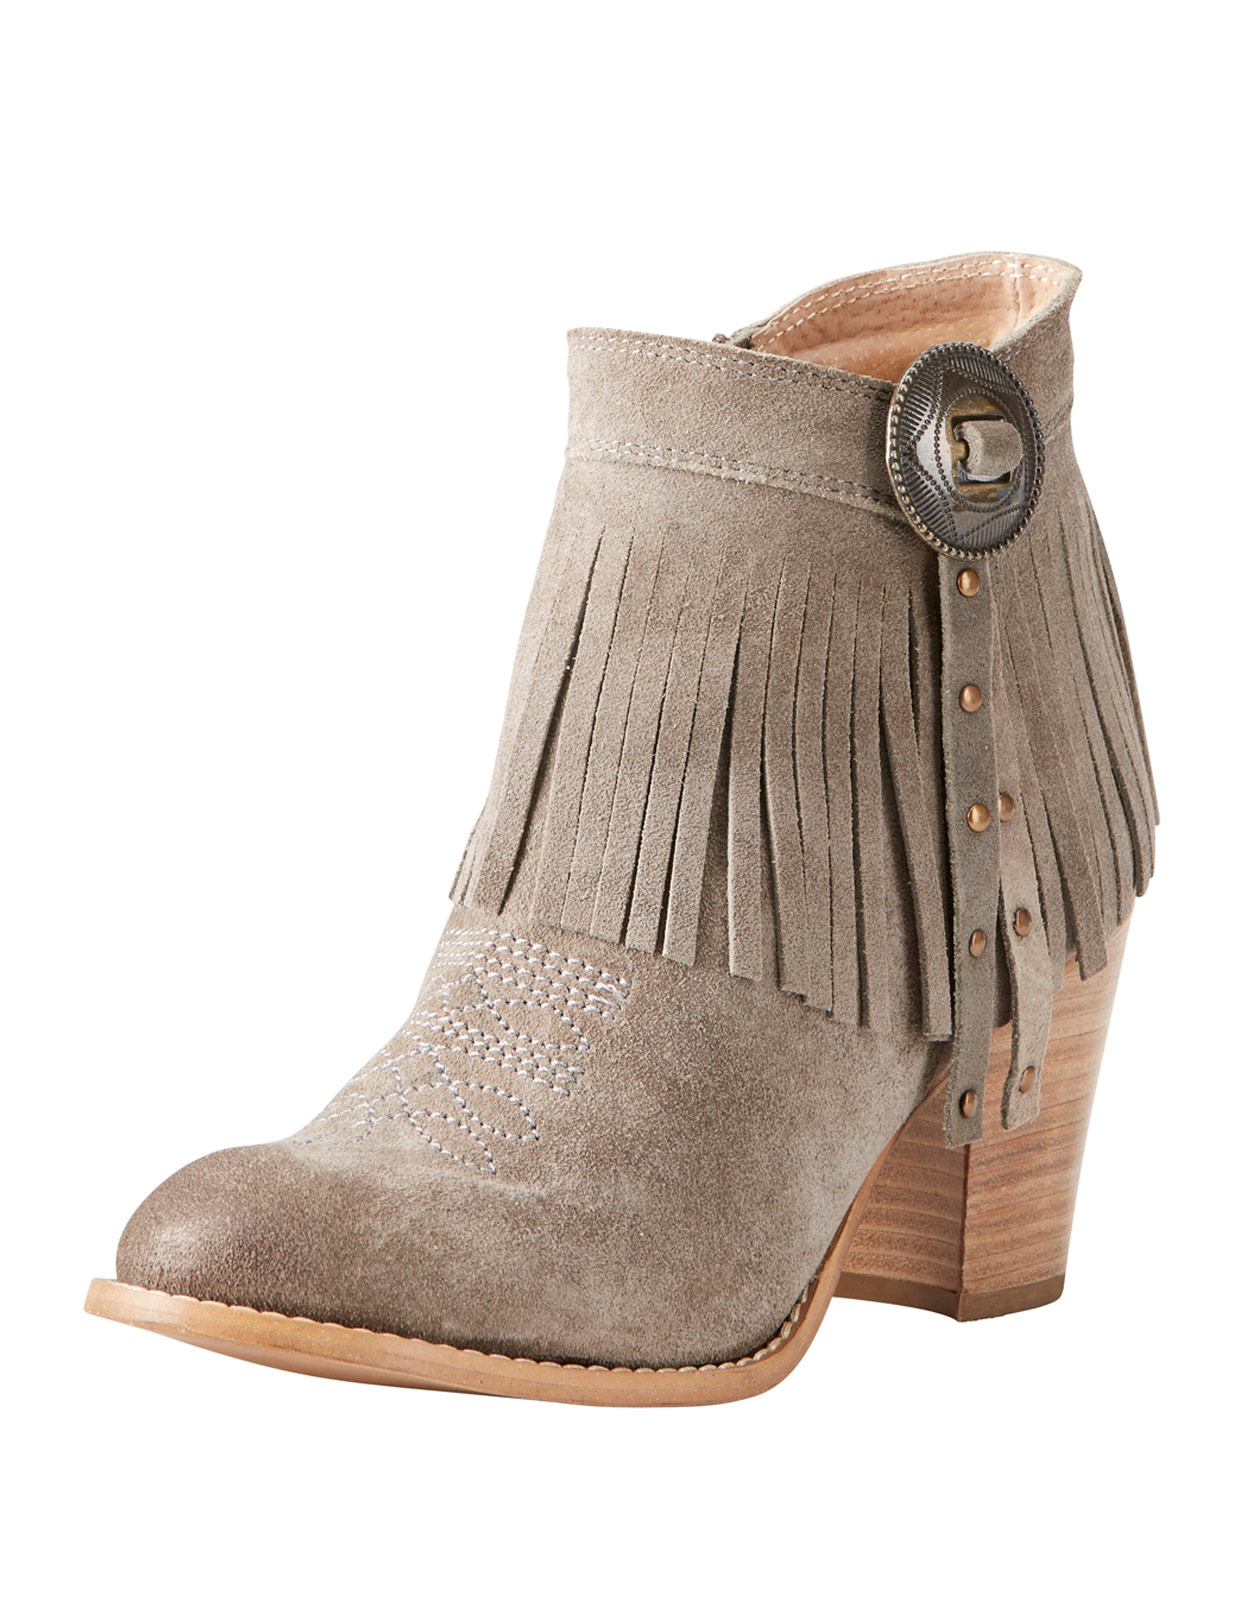 Ariat Women's Unbridled Avery 4.5